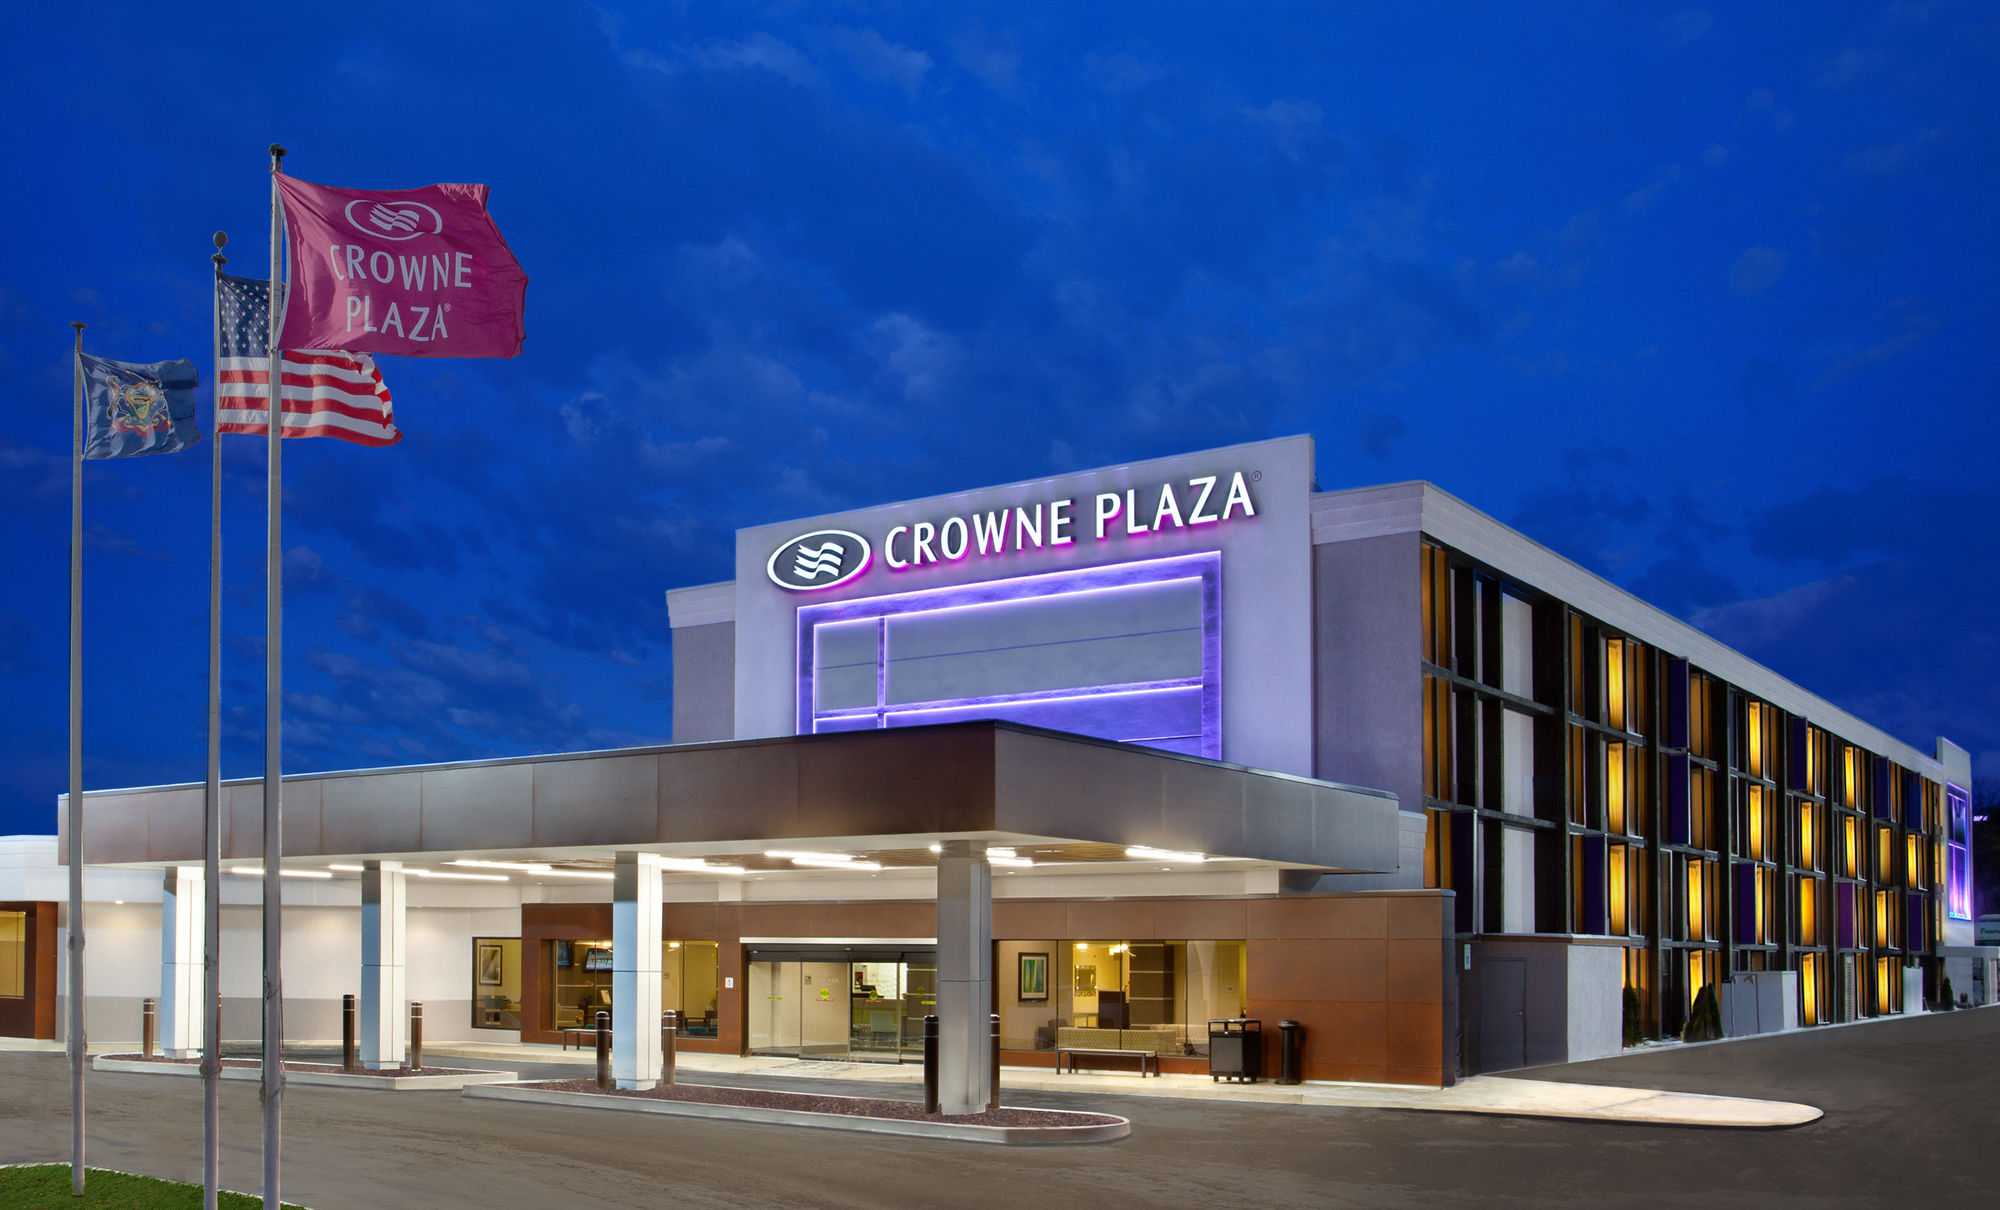 As a brand part of the IHG group, Crowne Plaza is for the business traveler or vacationer who is looking for a premier hotel that offers a value for their dollar. Since opening in , Crowne Plaza has worked to provide high-quality service that you deserve.